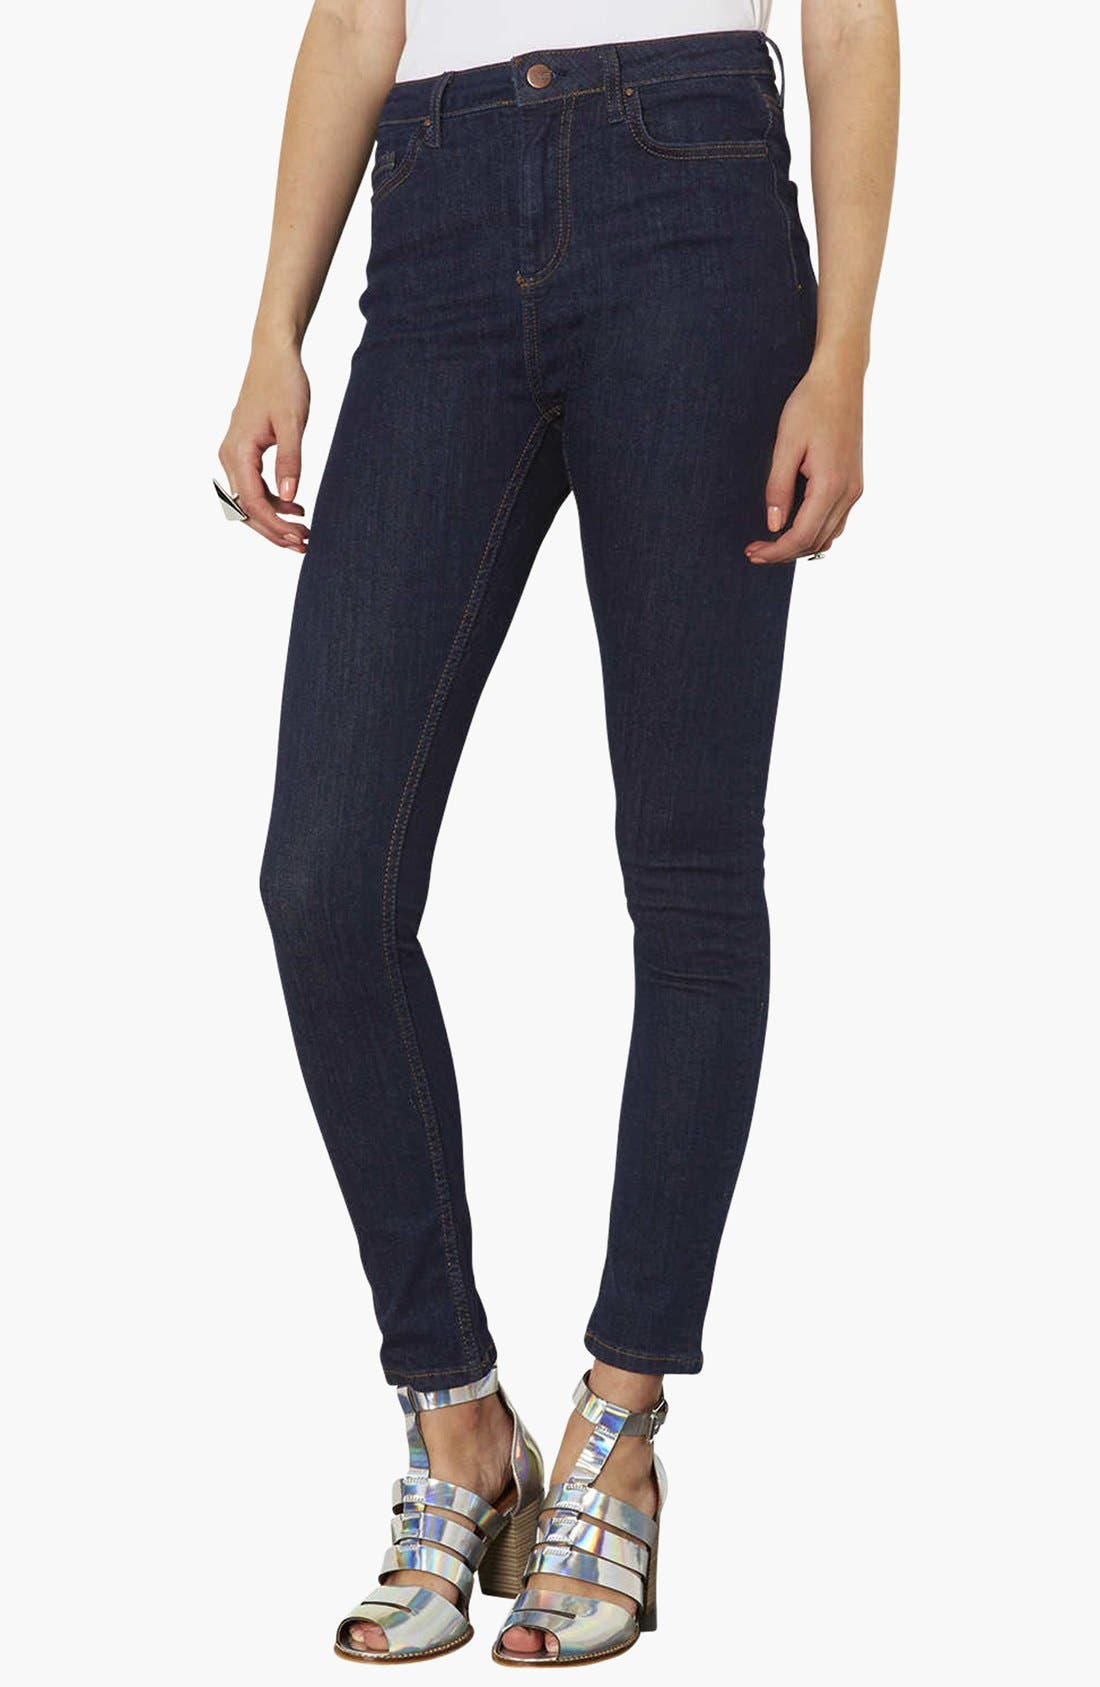 Main Image - Topshop Moto 'Jamie' High Rise Skinny Jeans (Blue) (Regular, Short & Long)